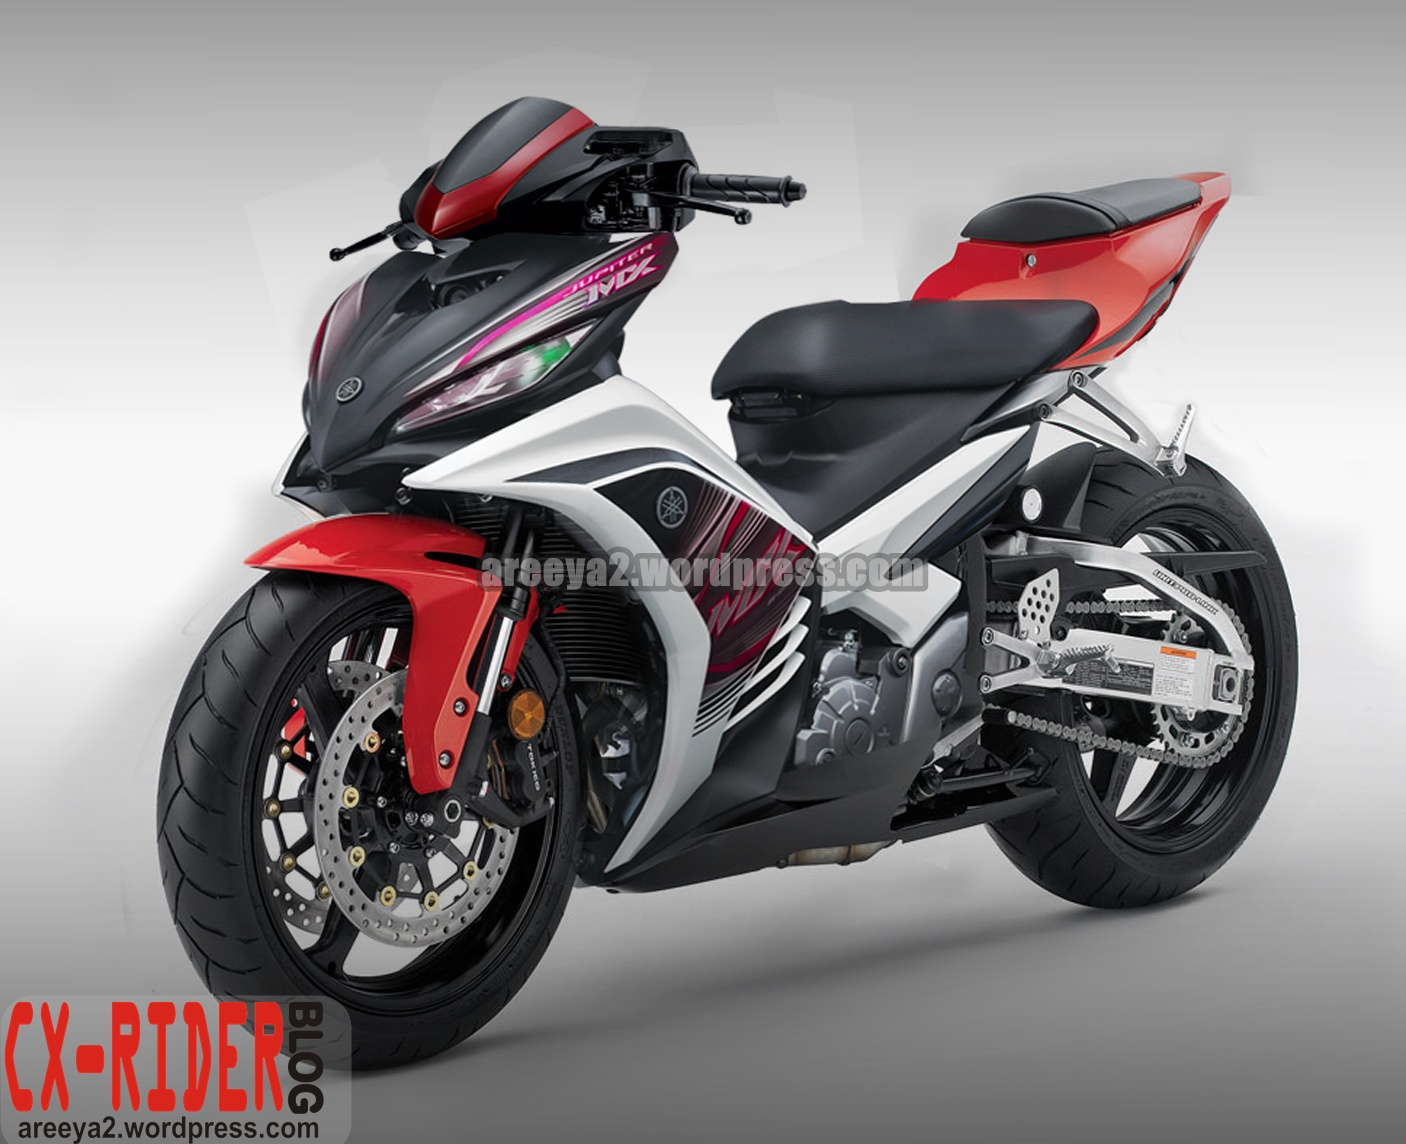 modifikasi jupiter mx semoga gambar gambar modifikasi jupiter mx